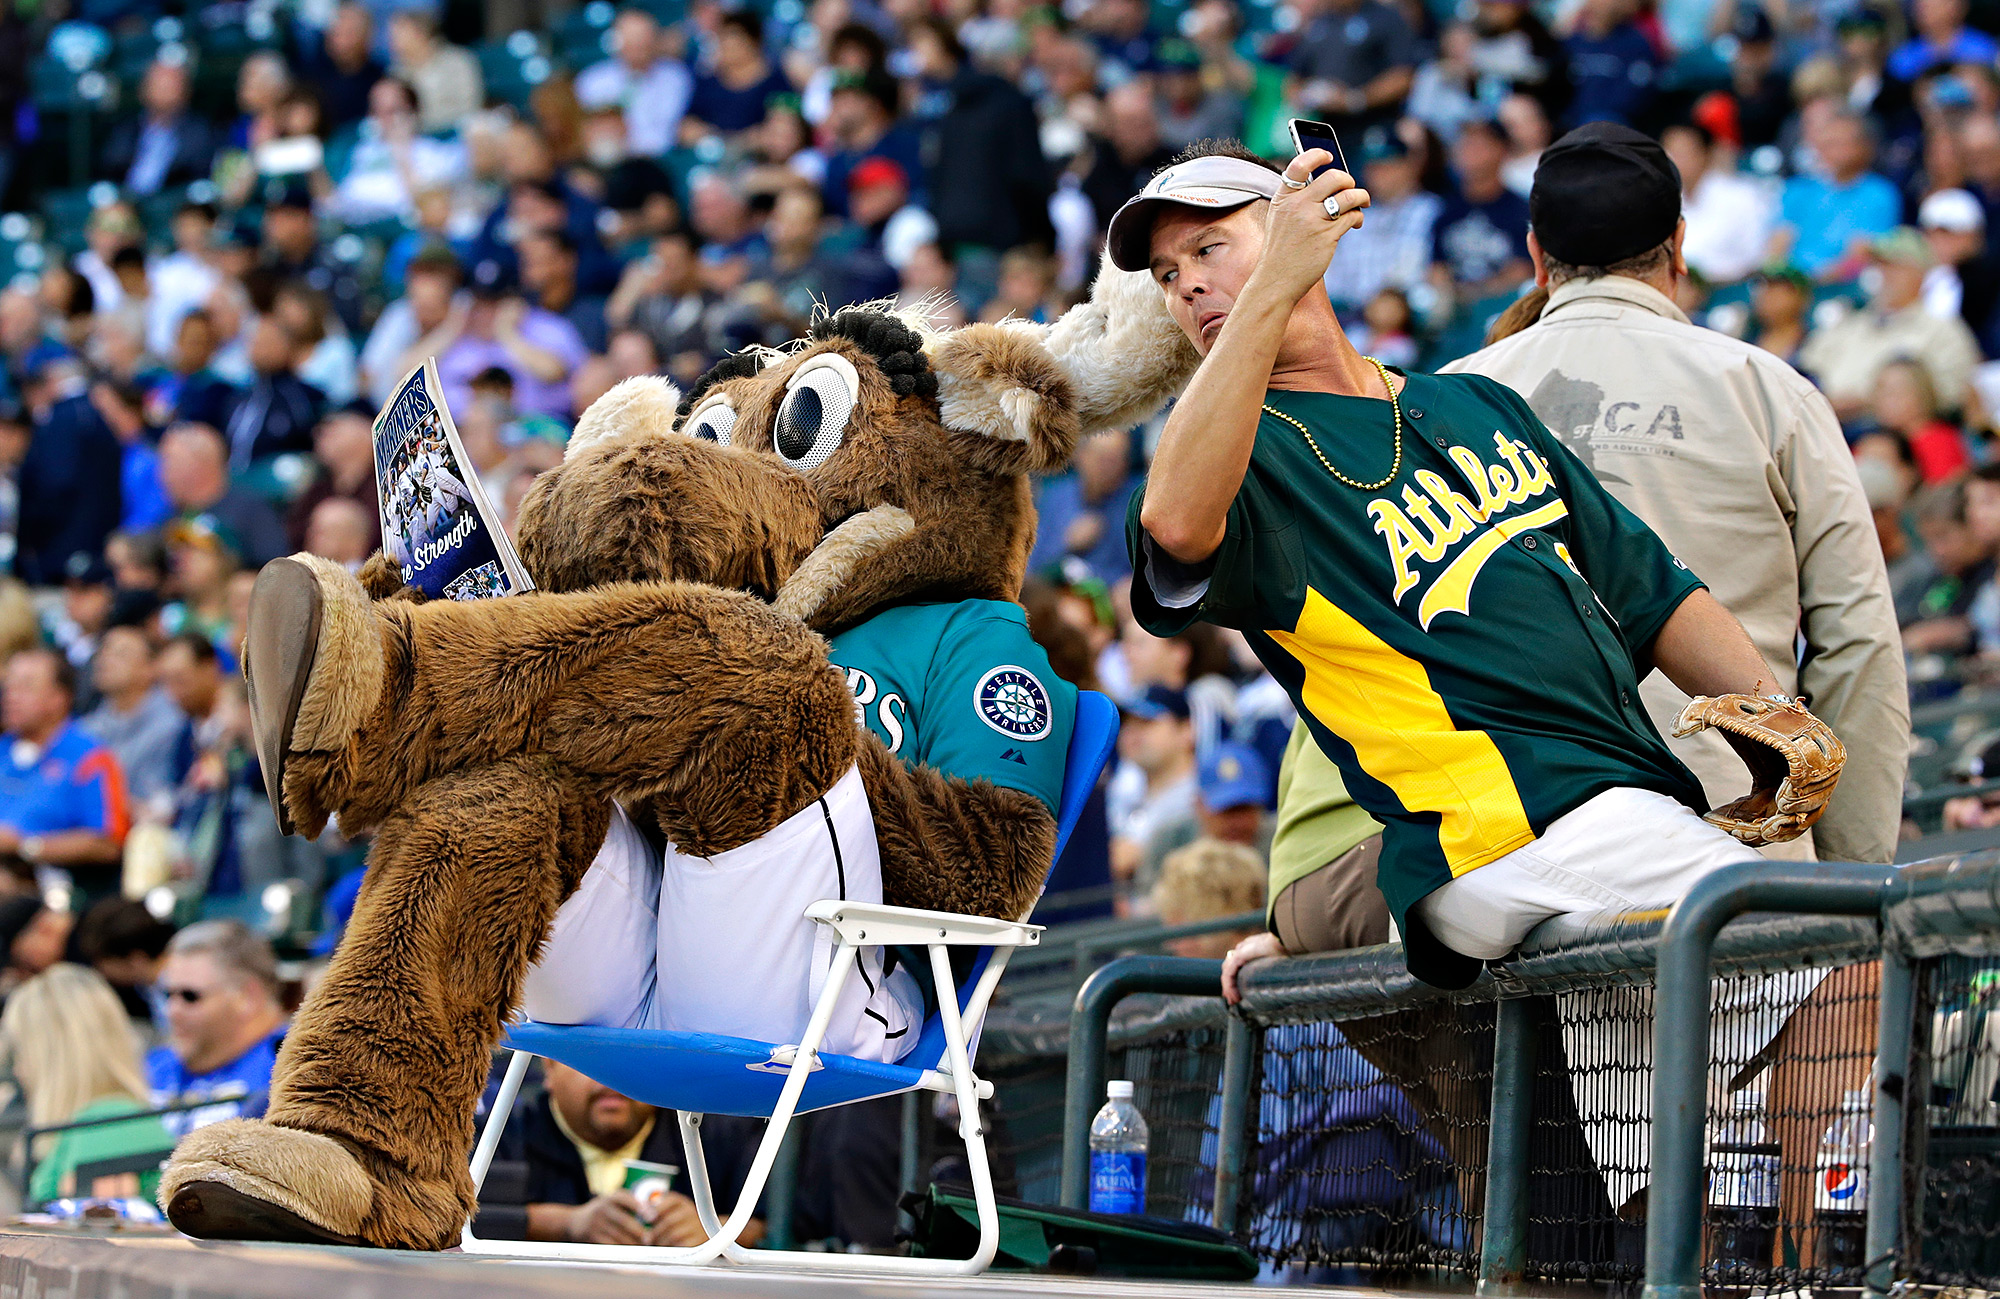 Oakland Athletics fan - Friday Funnies: 2014 The Year of ...